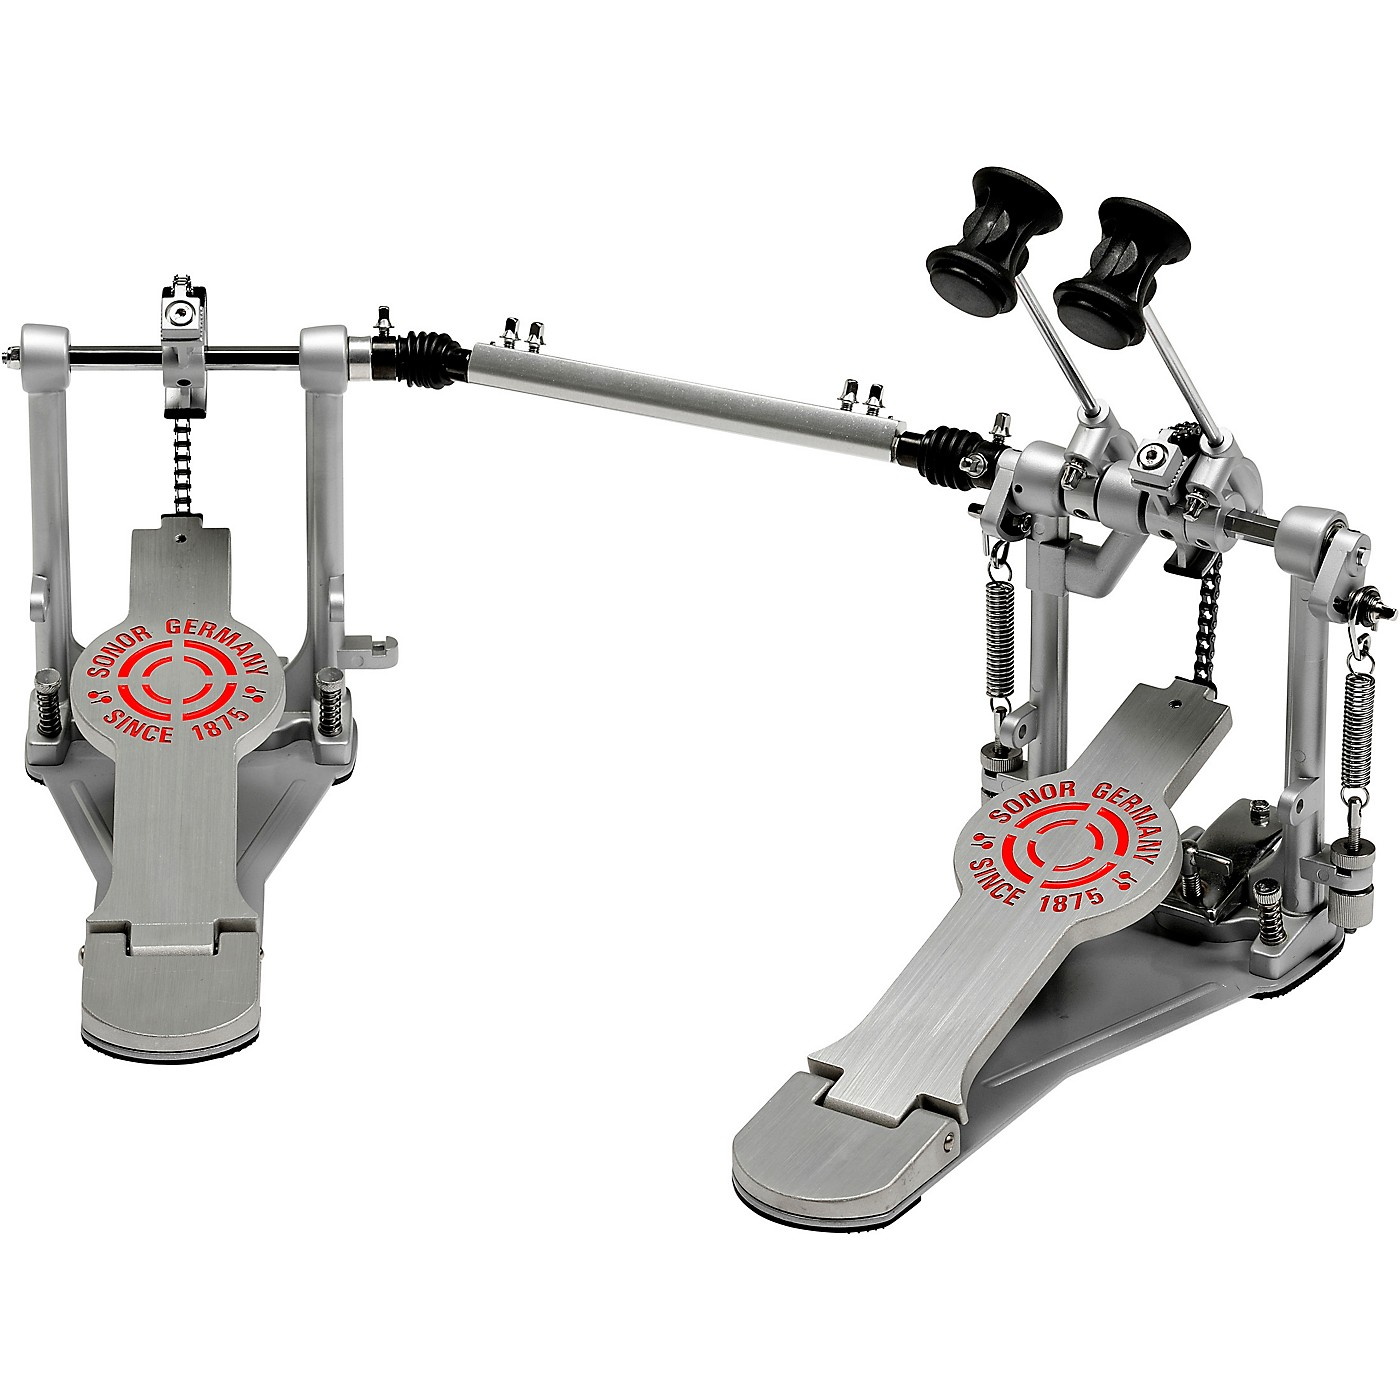 Sonor 2000 Series Double Pedal thumbnail